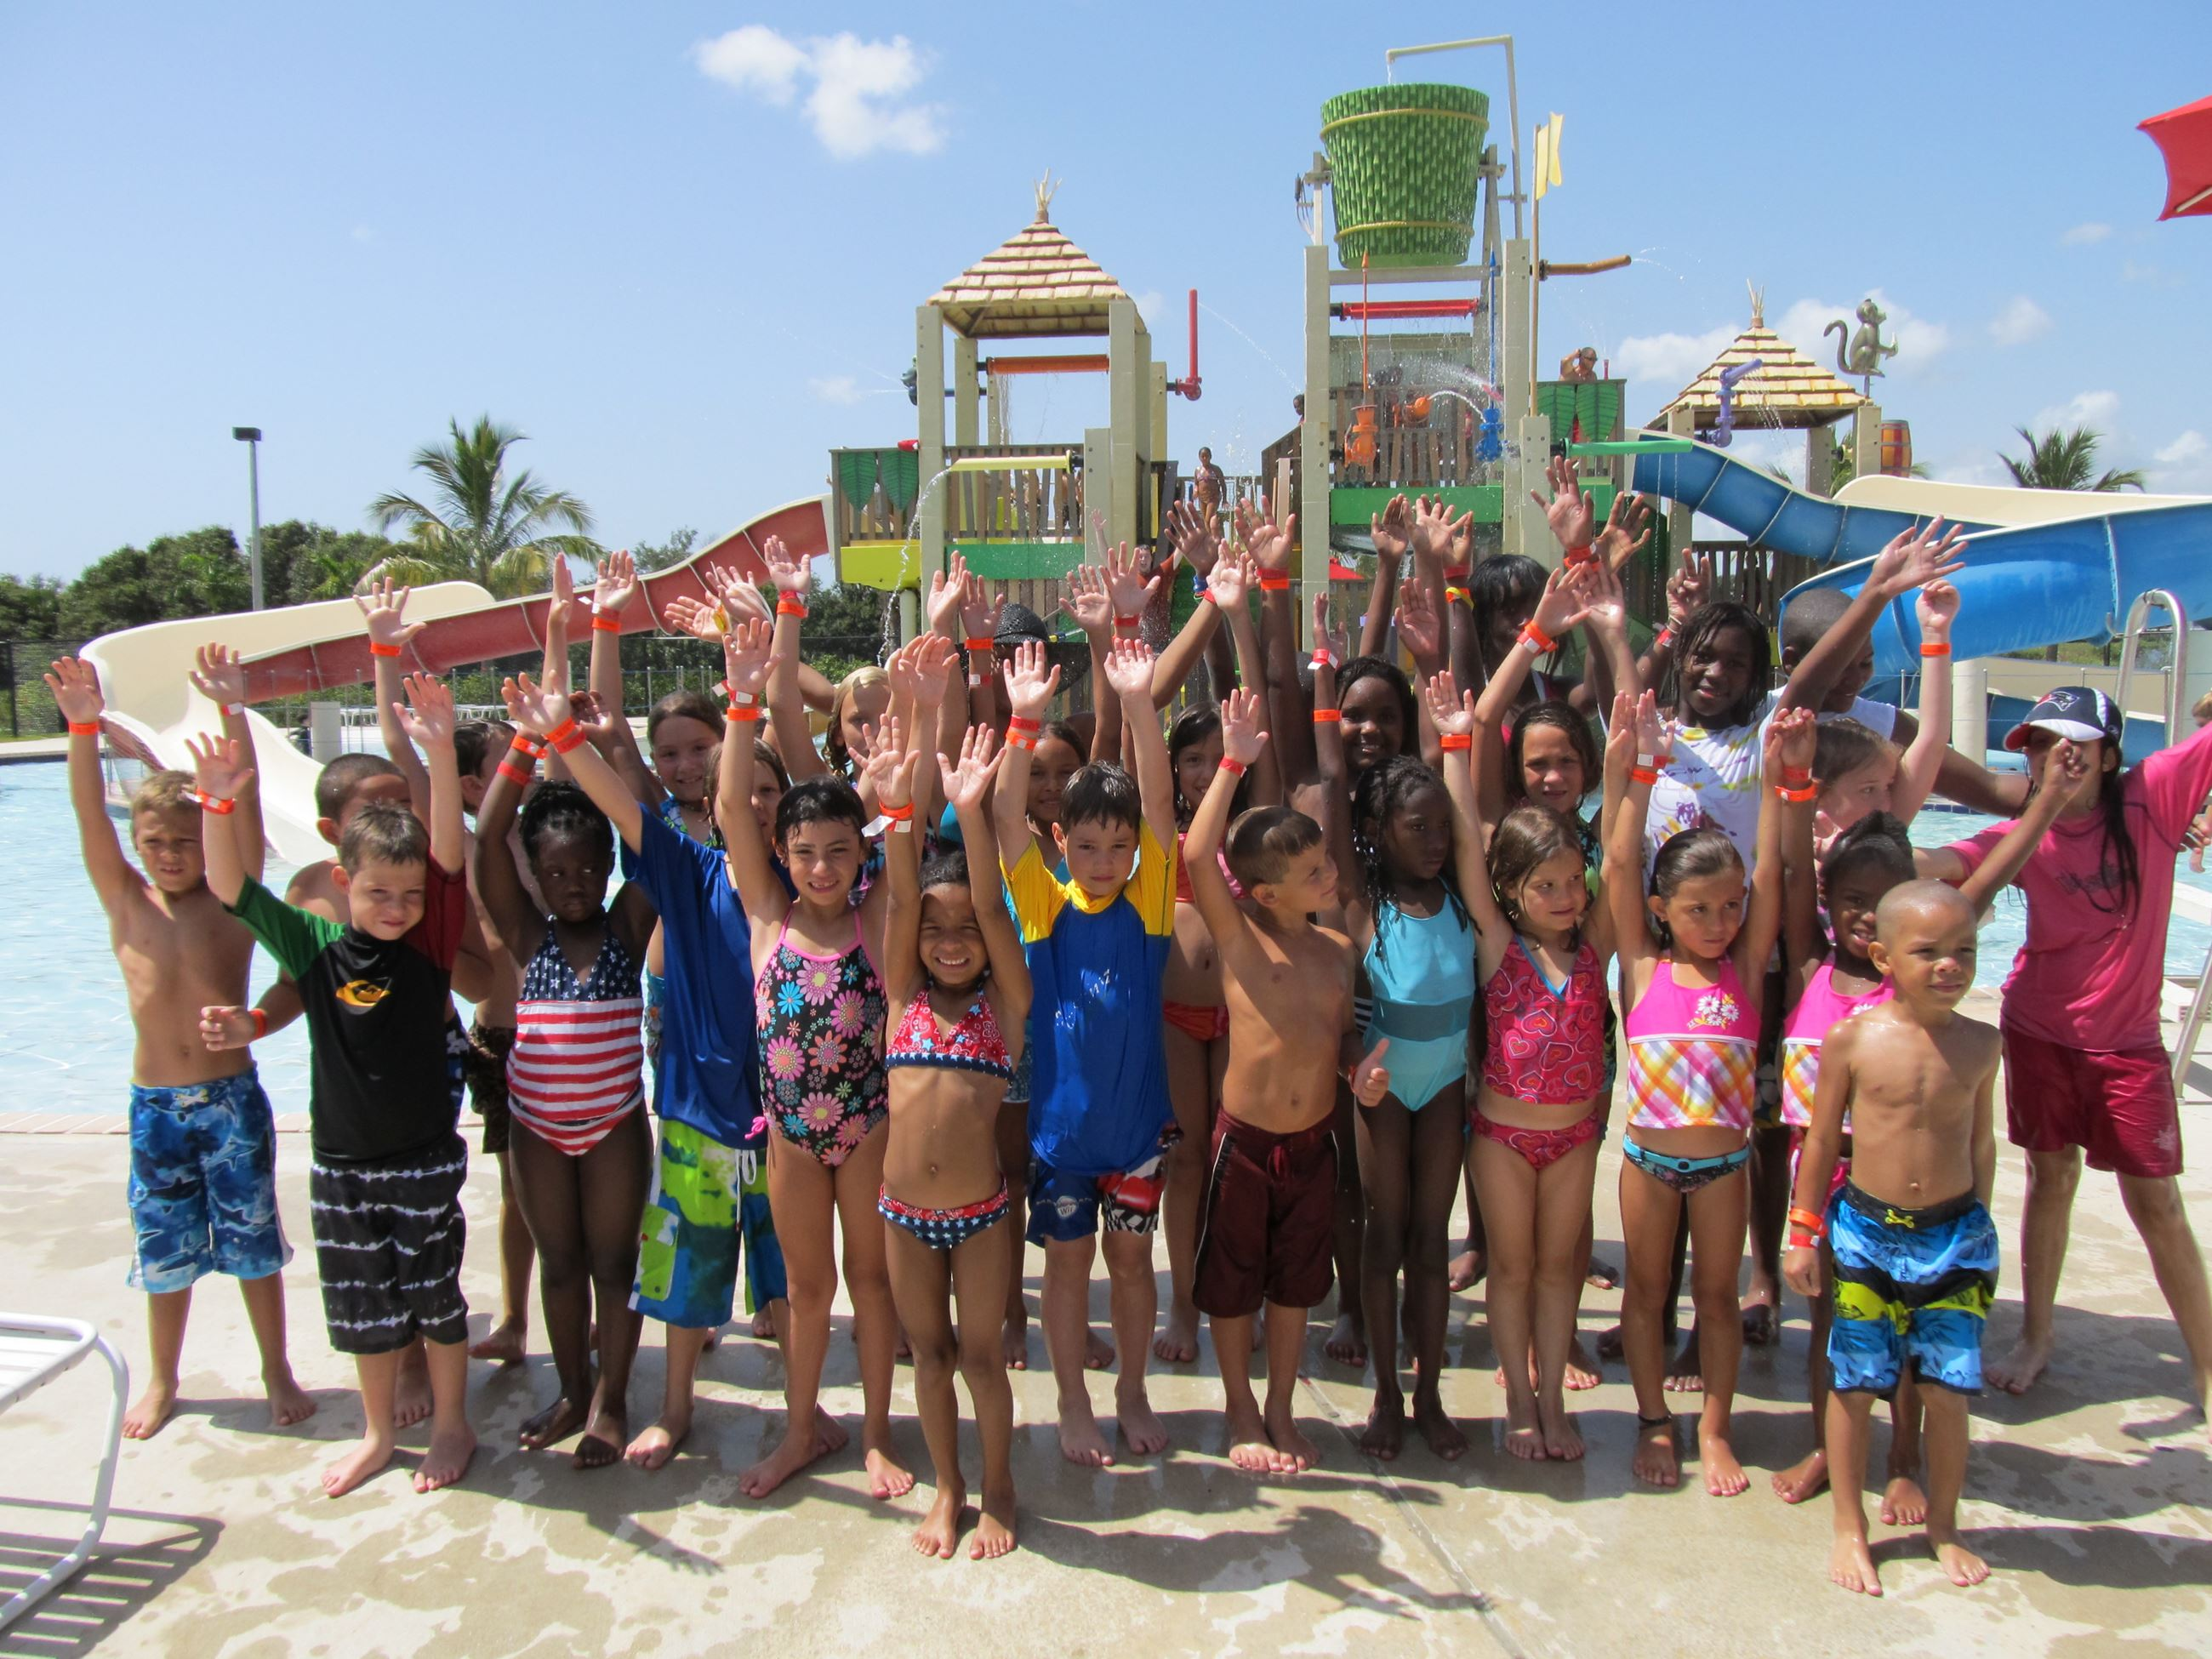 summer camp wilton manors fl official website